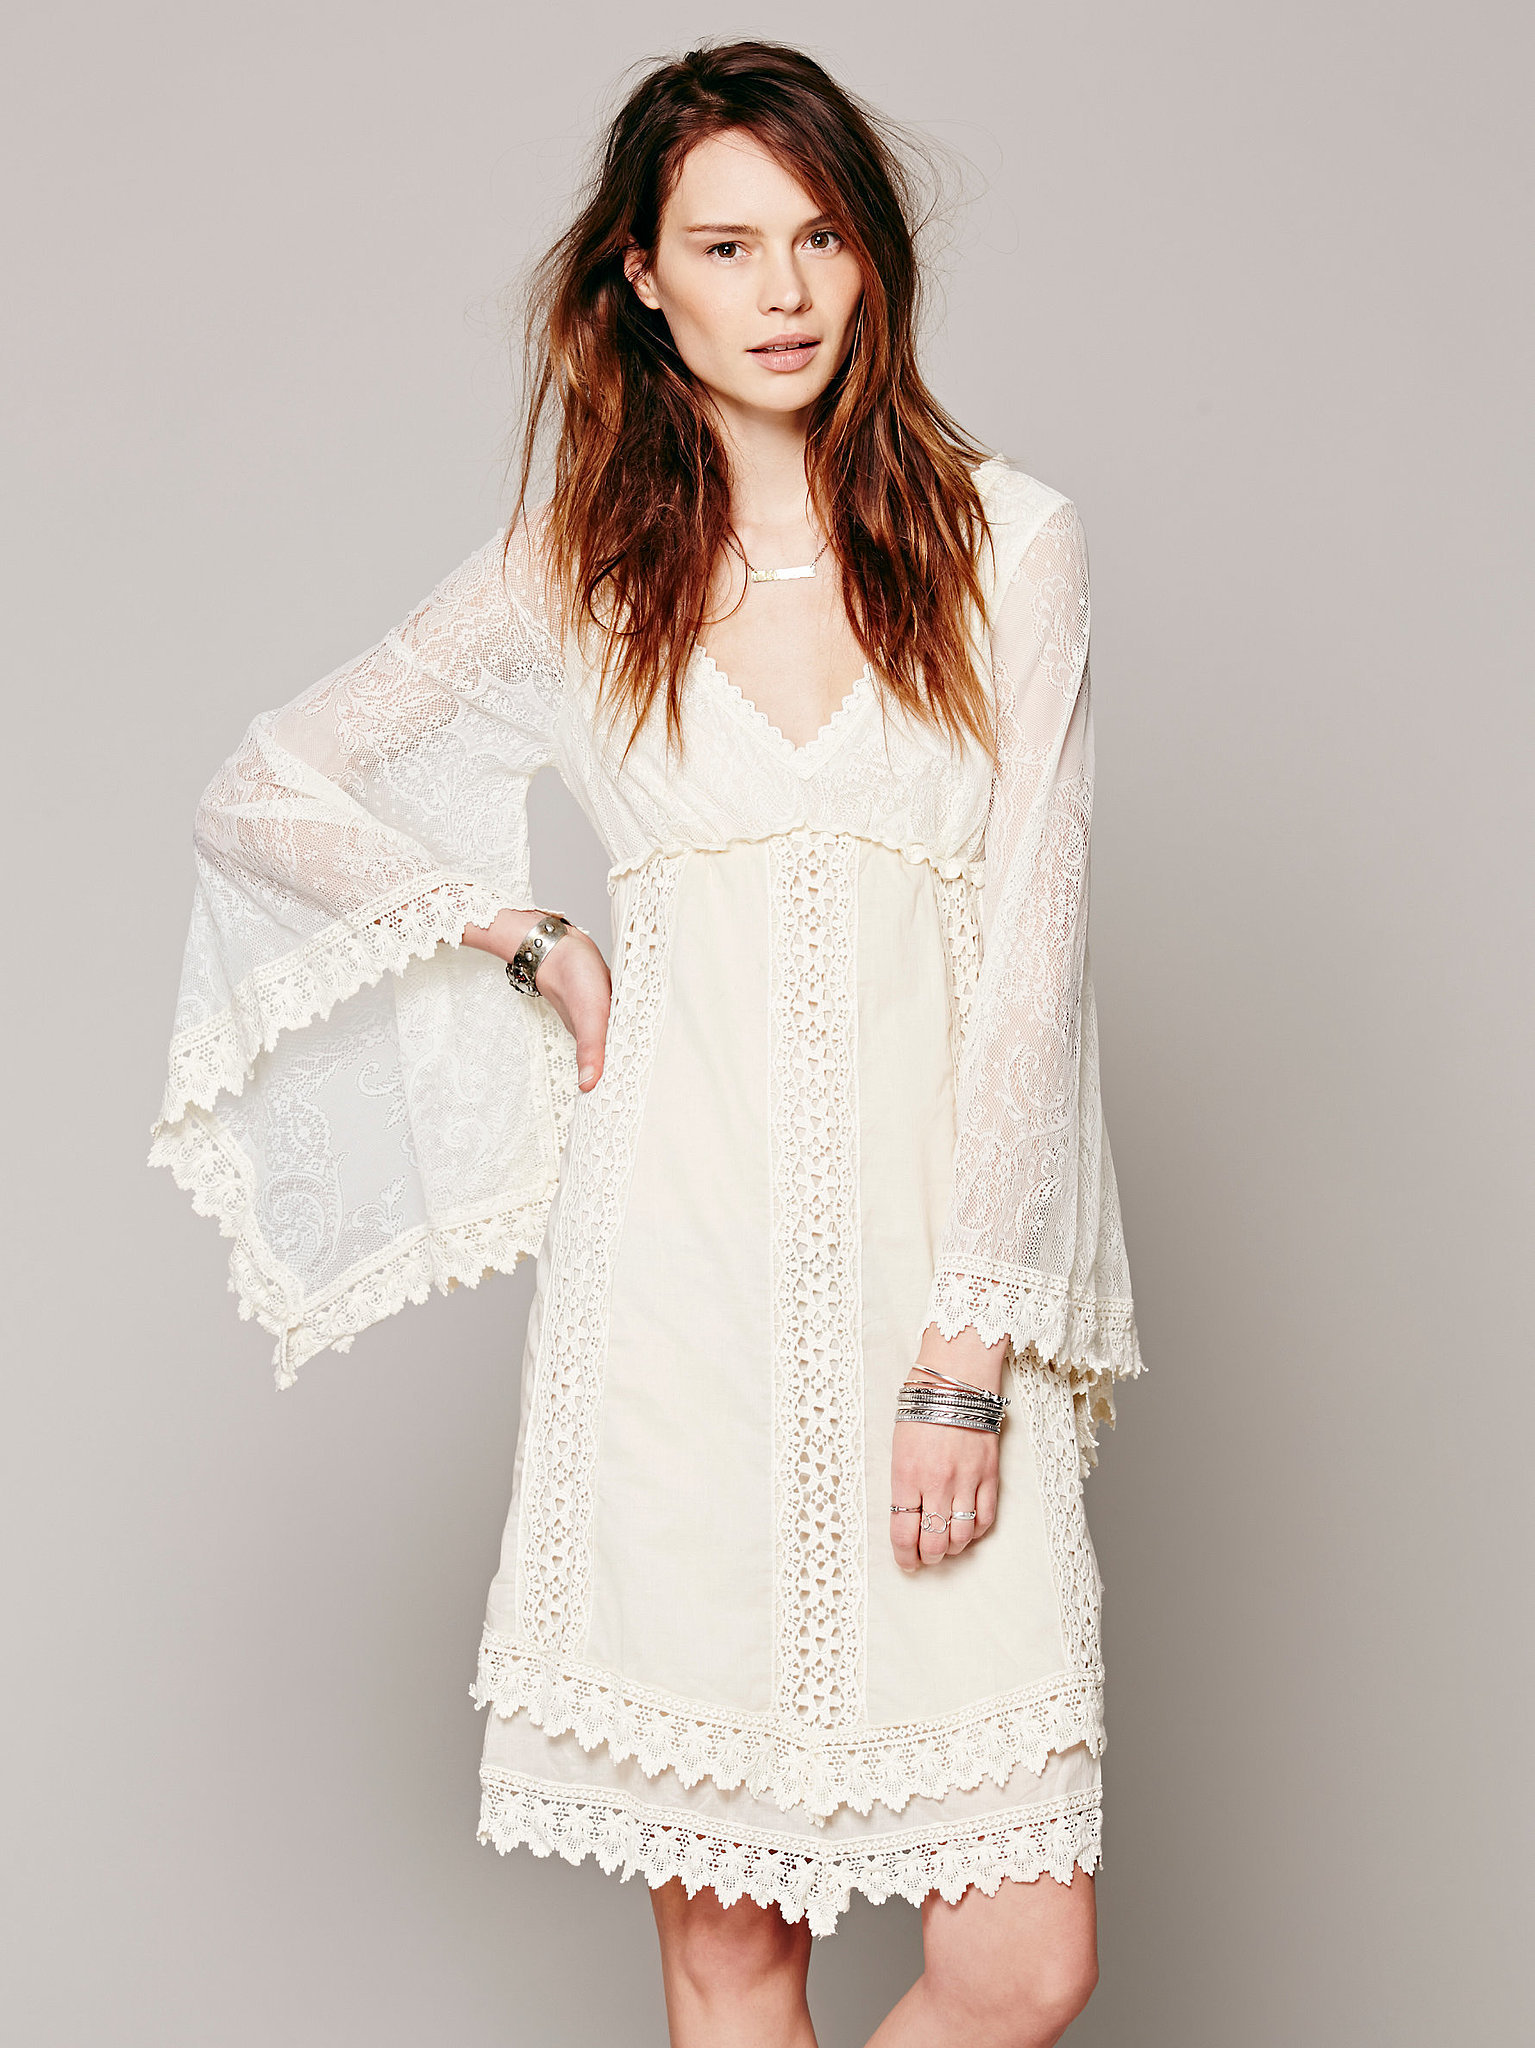 WHITE CROCHET DRESS - Gunda Daras